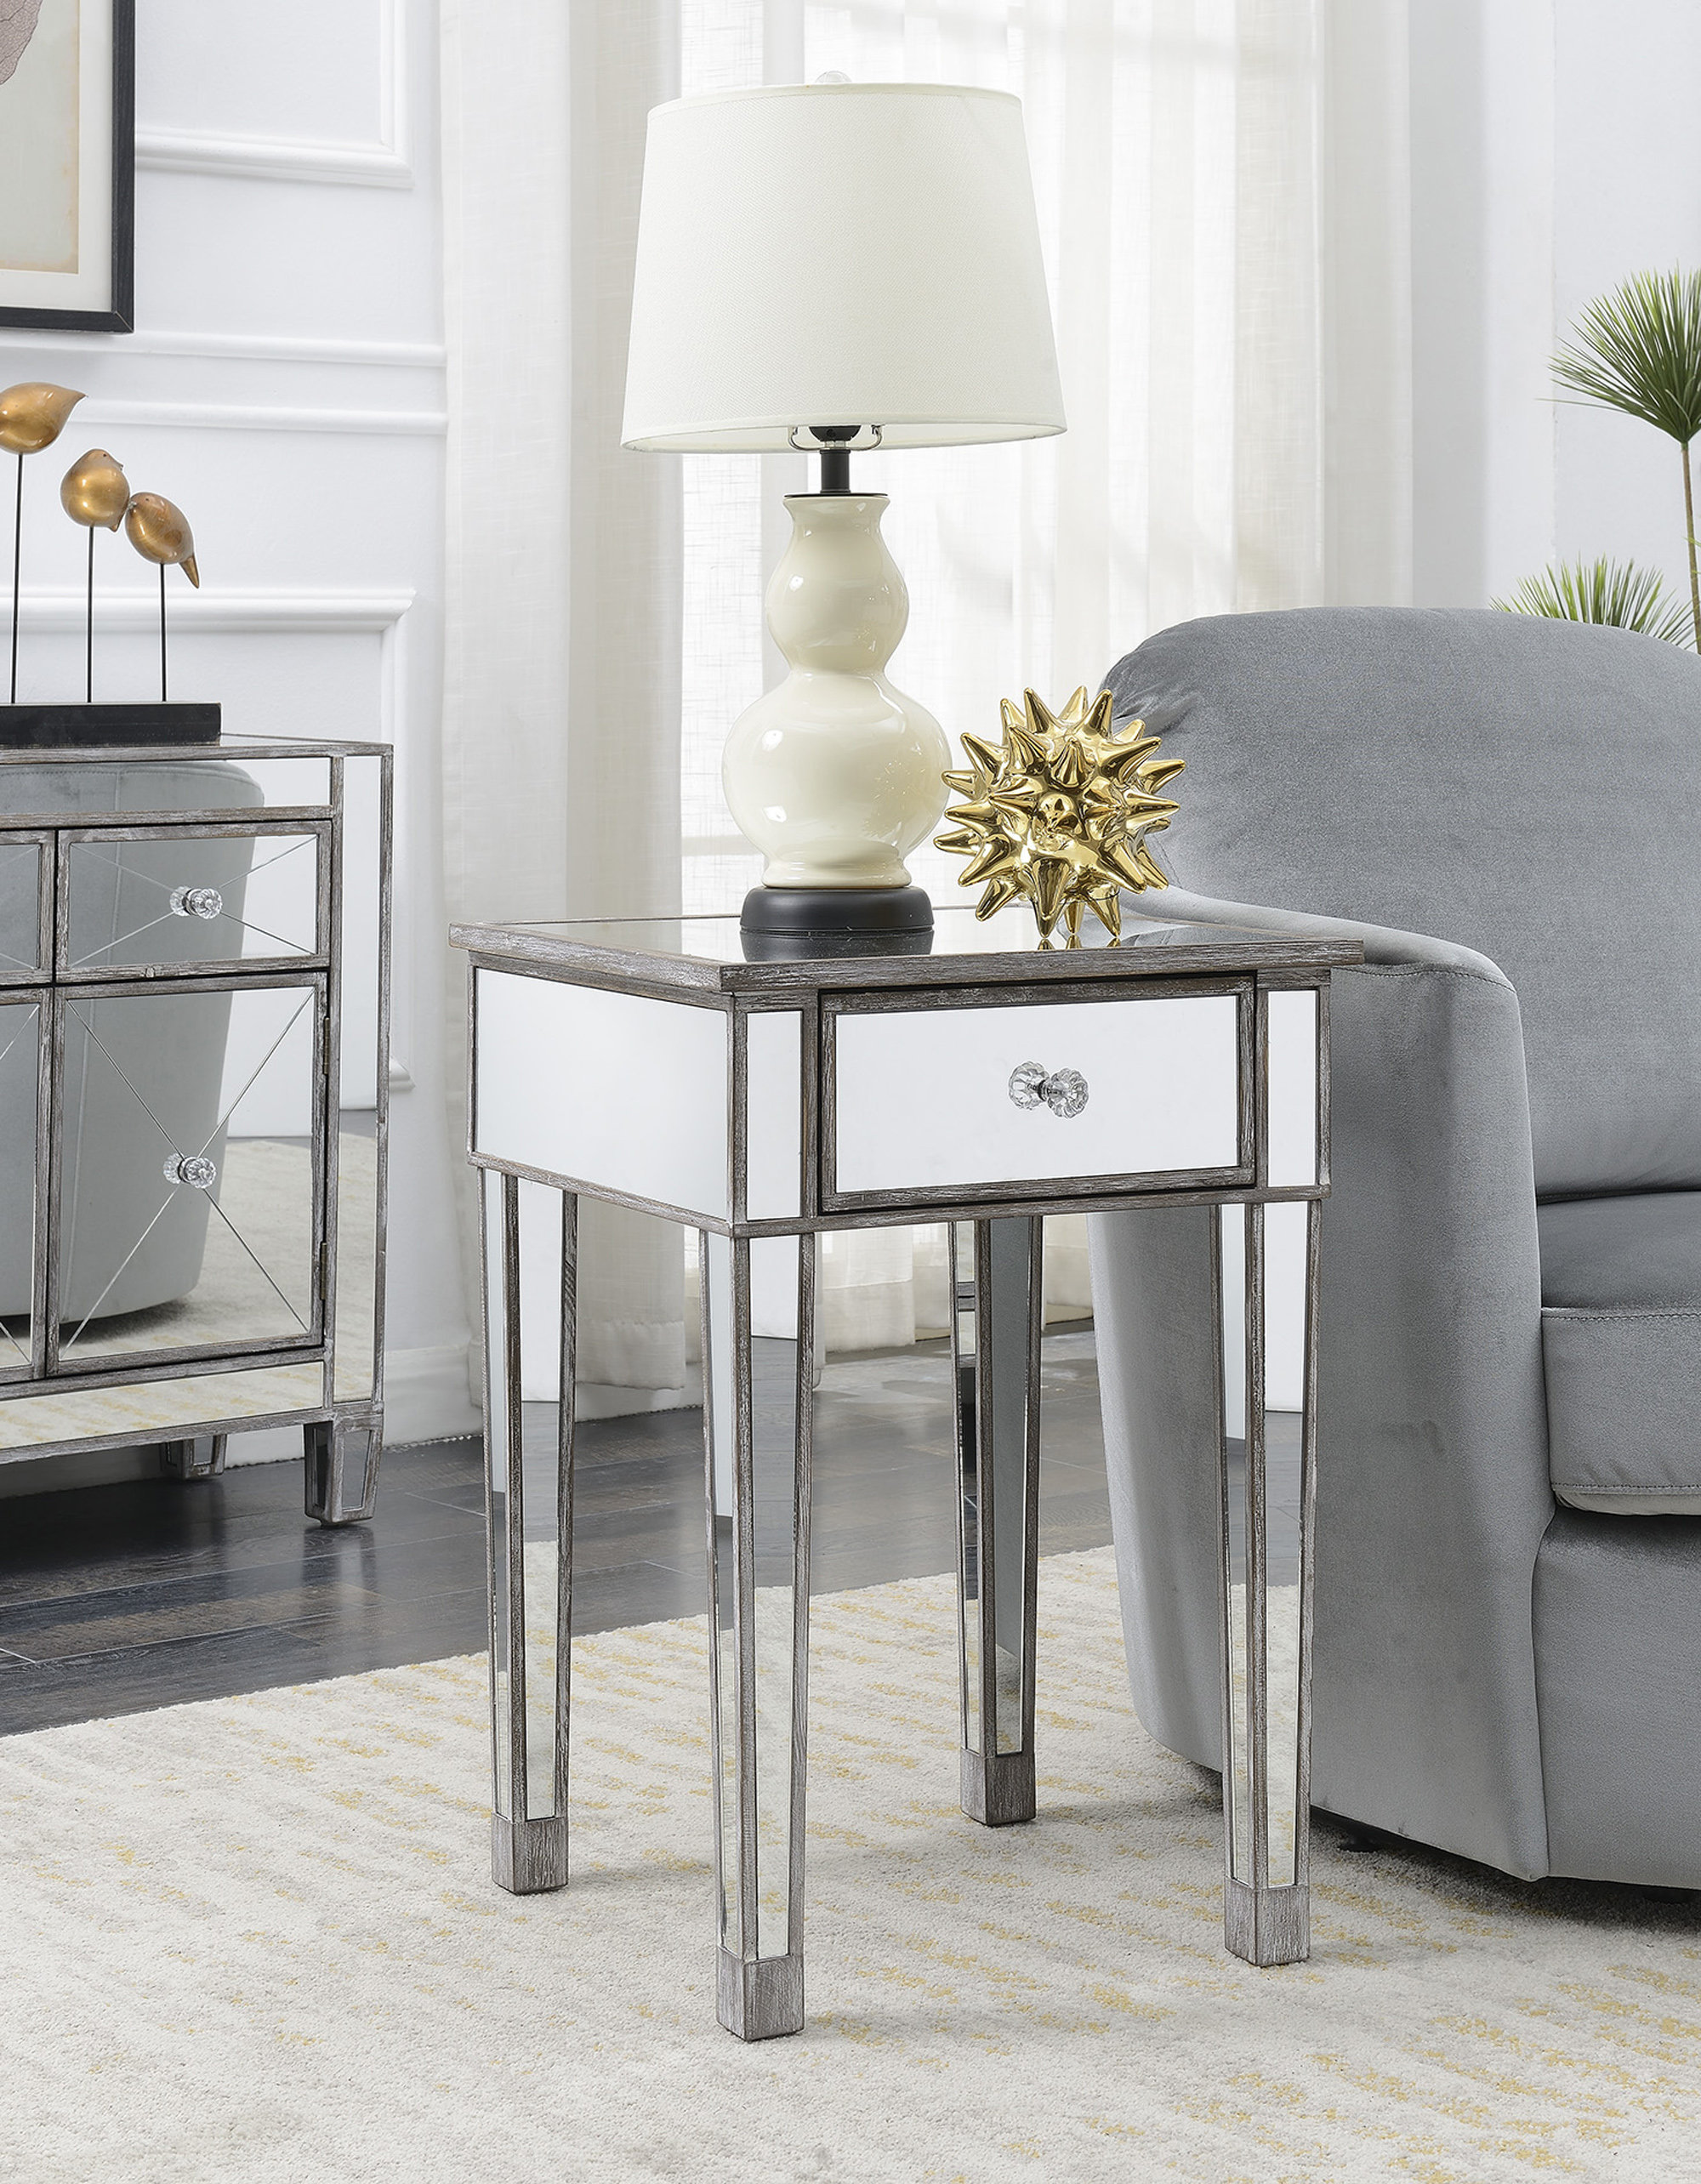 furniture mesmerizing living room and bedroom with mirrored end table drawers gallerie essa gold single drawer side bedside accent contemporary wood coffee tablecloth ikea kitchen